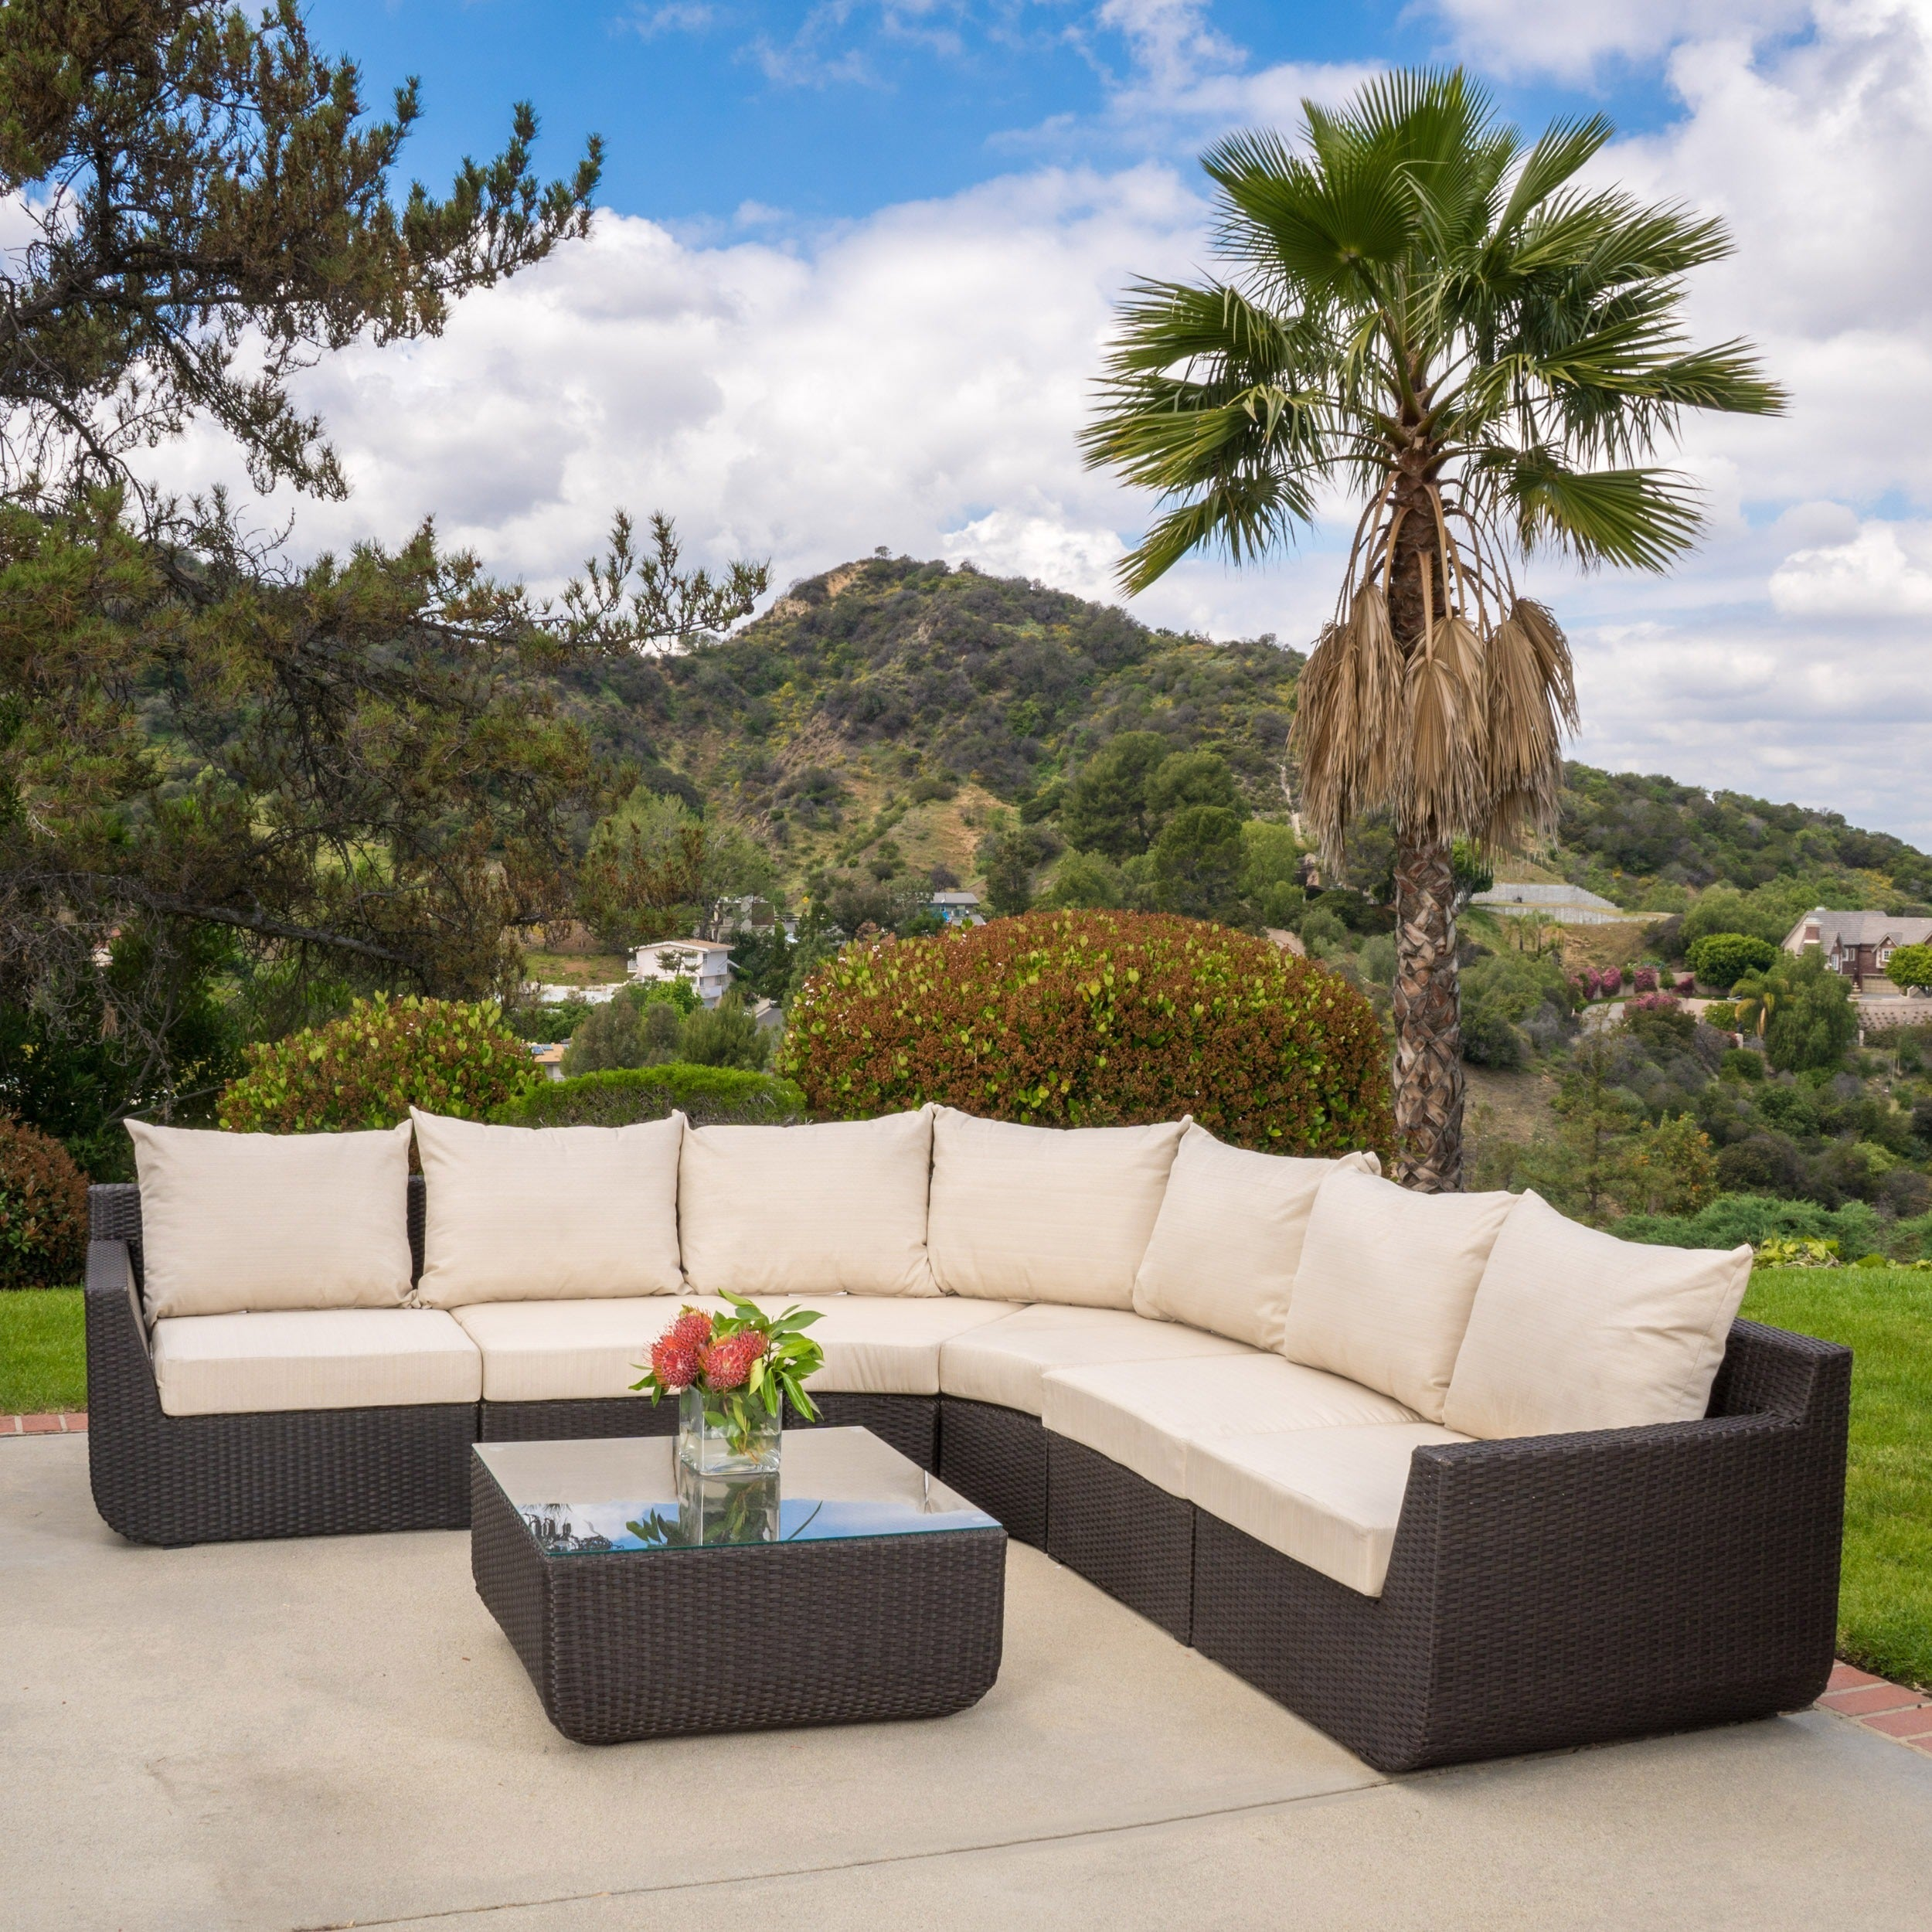 Outstanding Outdoor Sectional Sofa Set Budapestsightseeing Org Bralicious Painted Fabric Chair Ideas Braliciousco